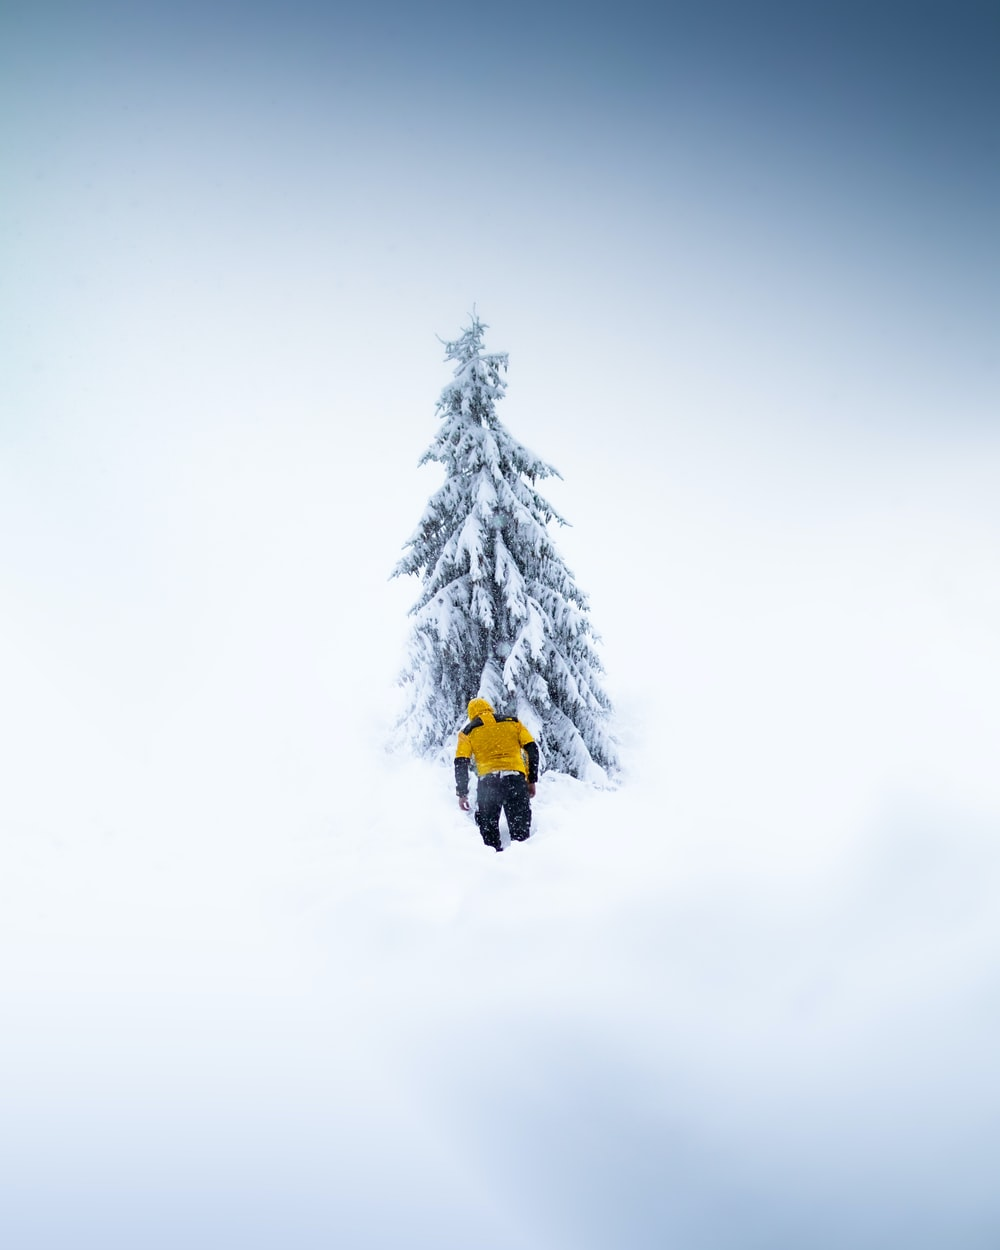 person in yellow jacket and black pants standing on snow covered ground